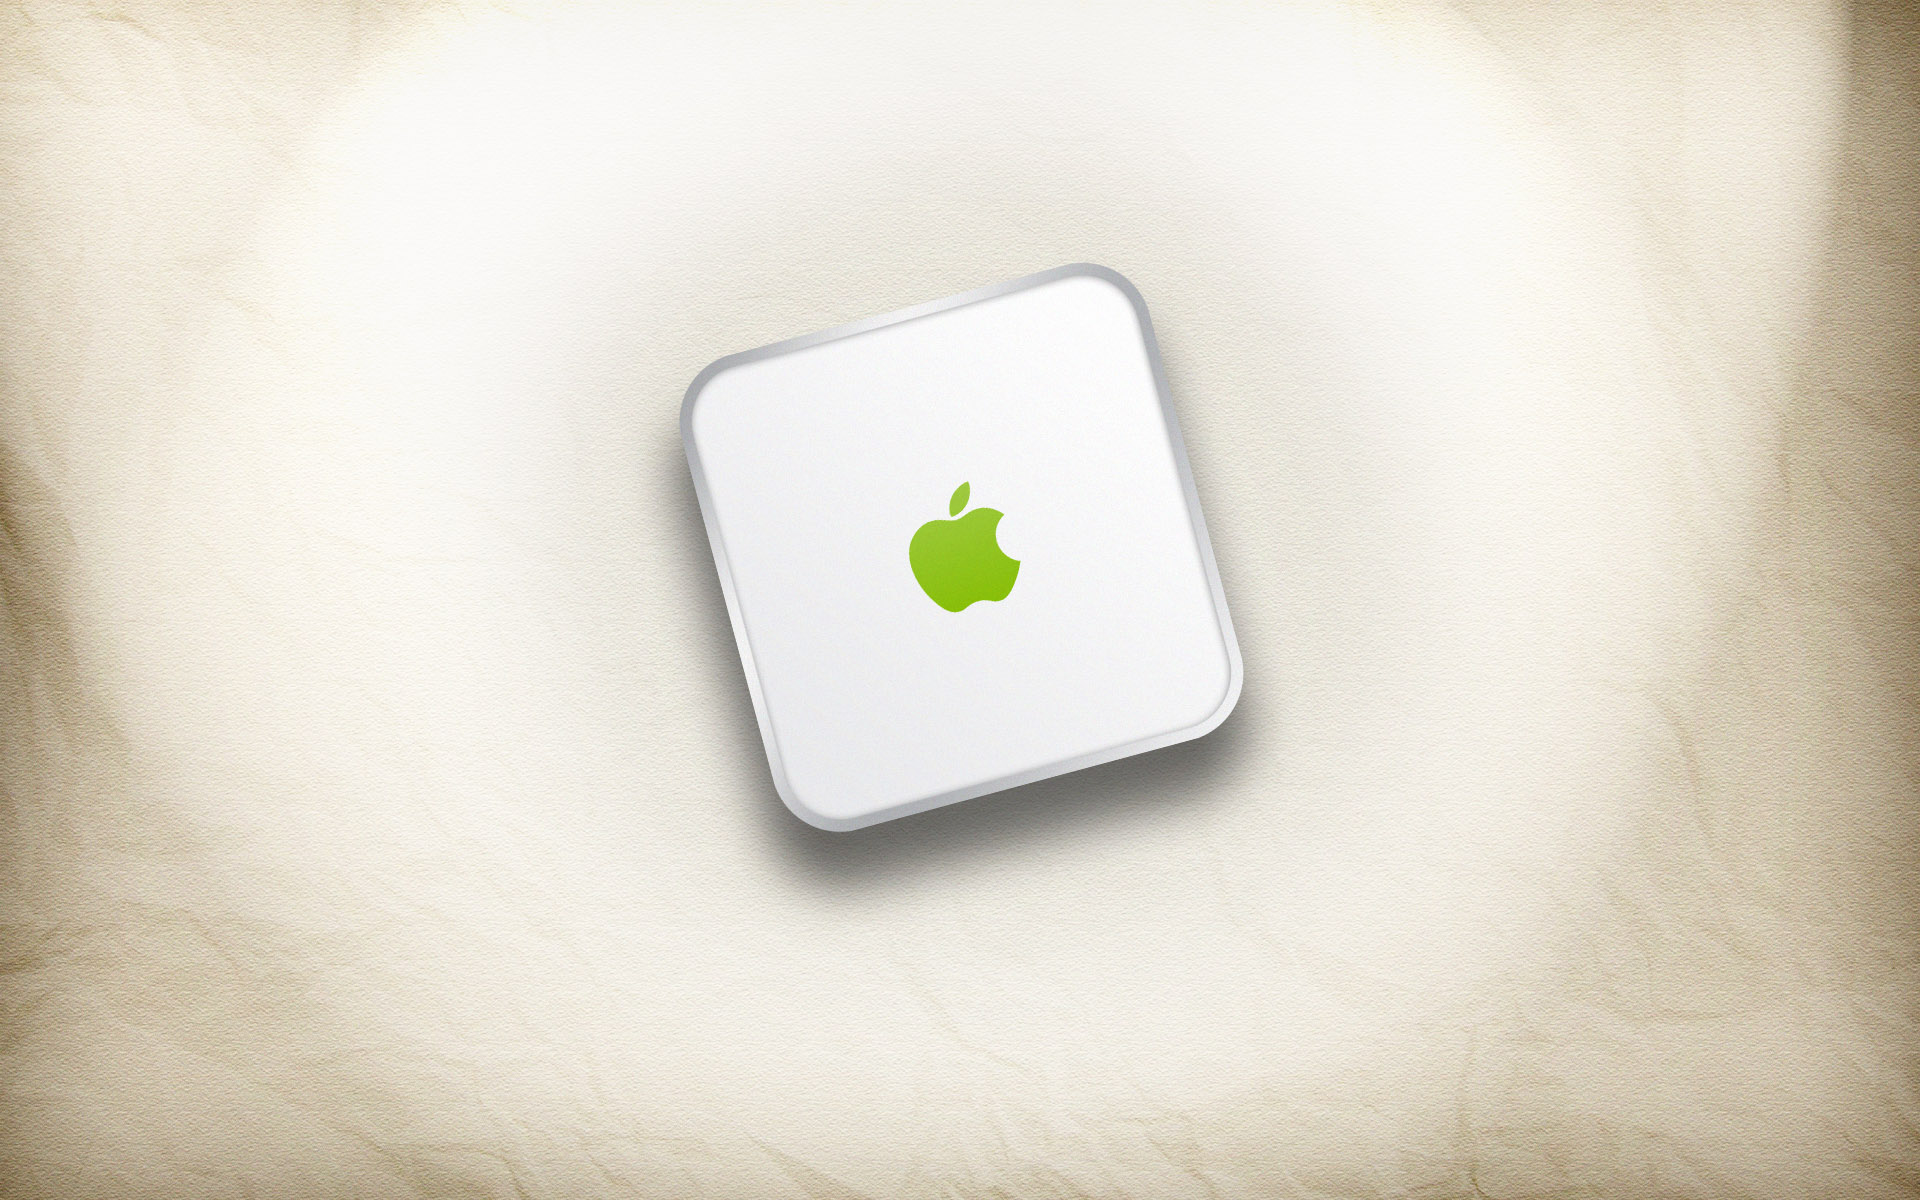 HD Apple wallpaper 19157